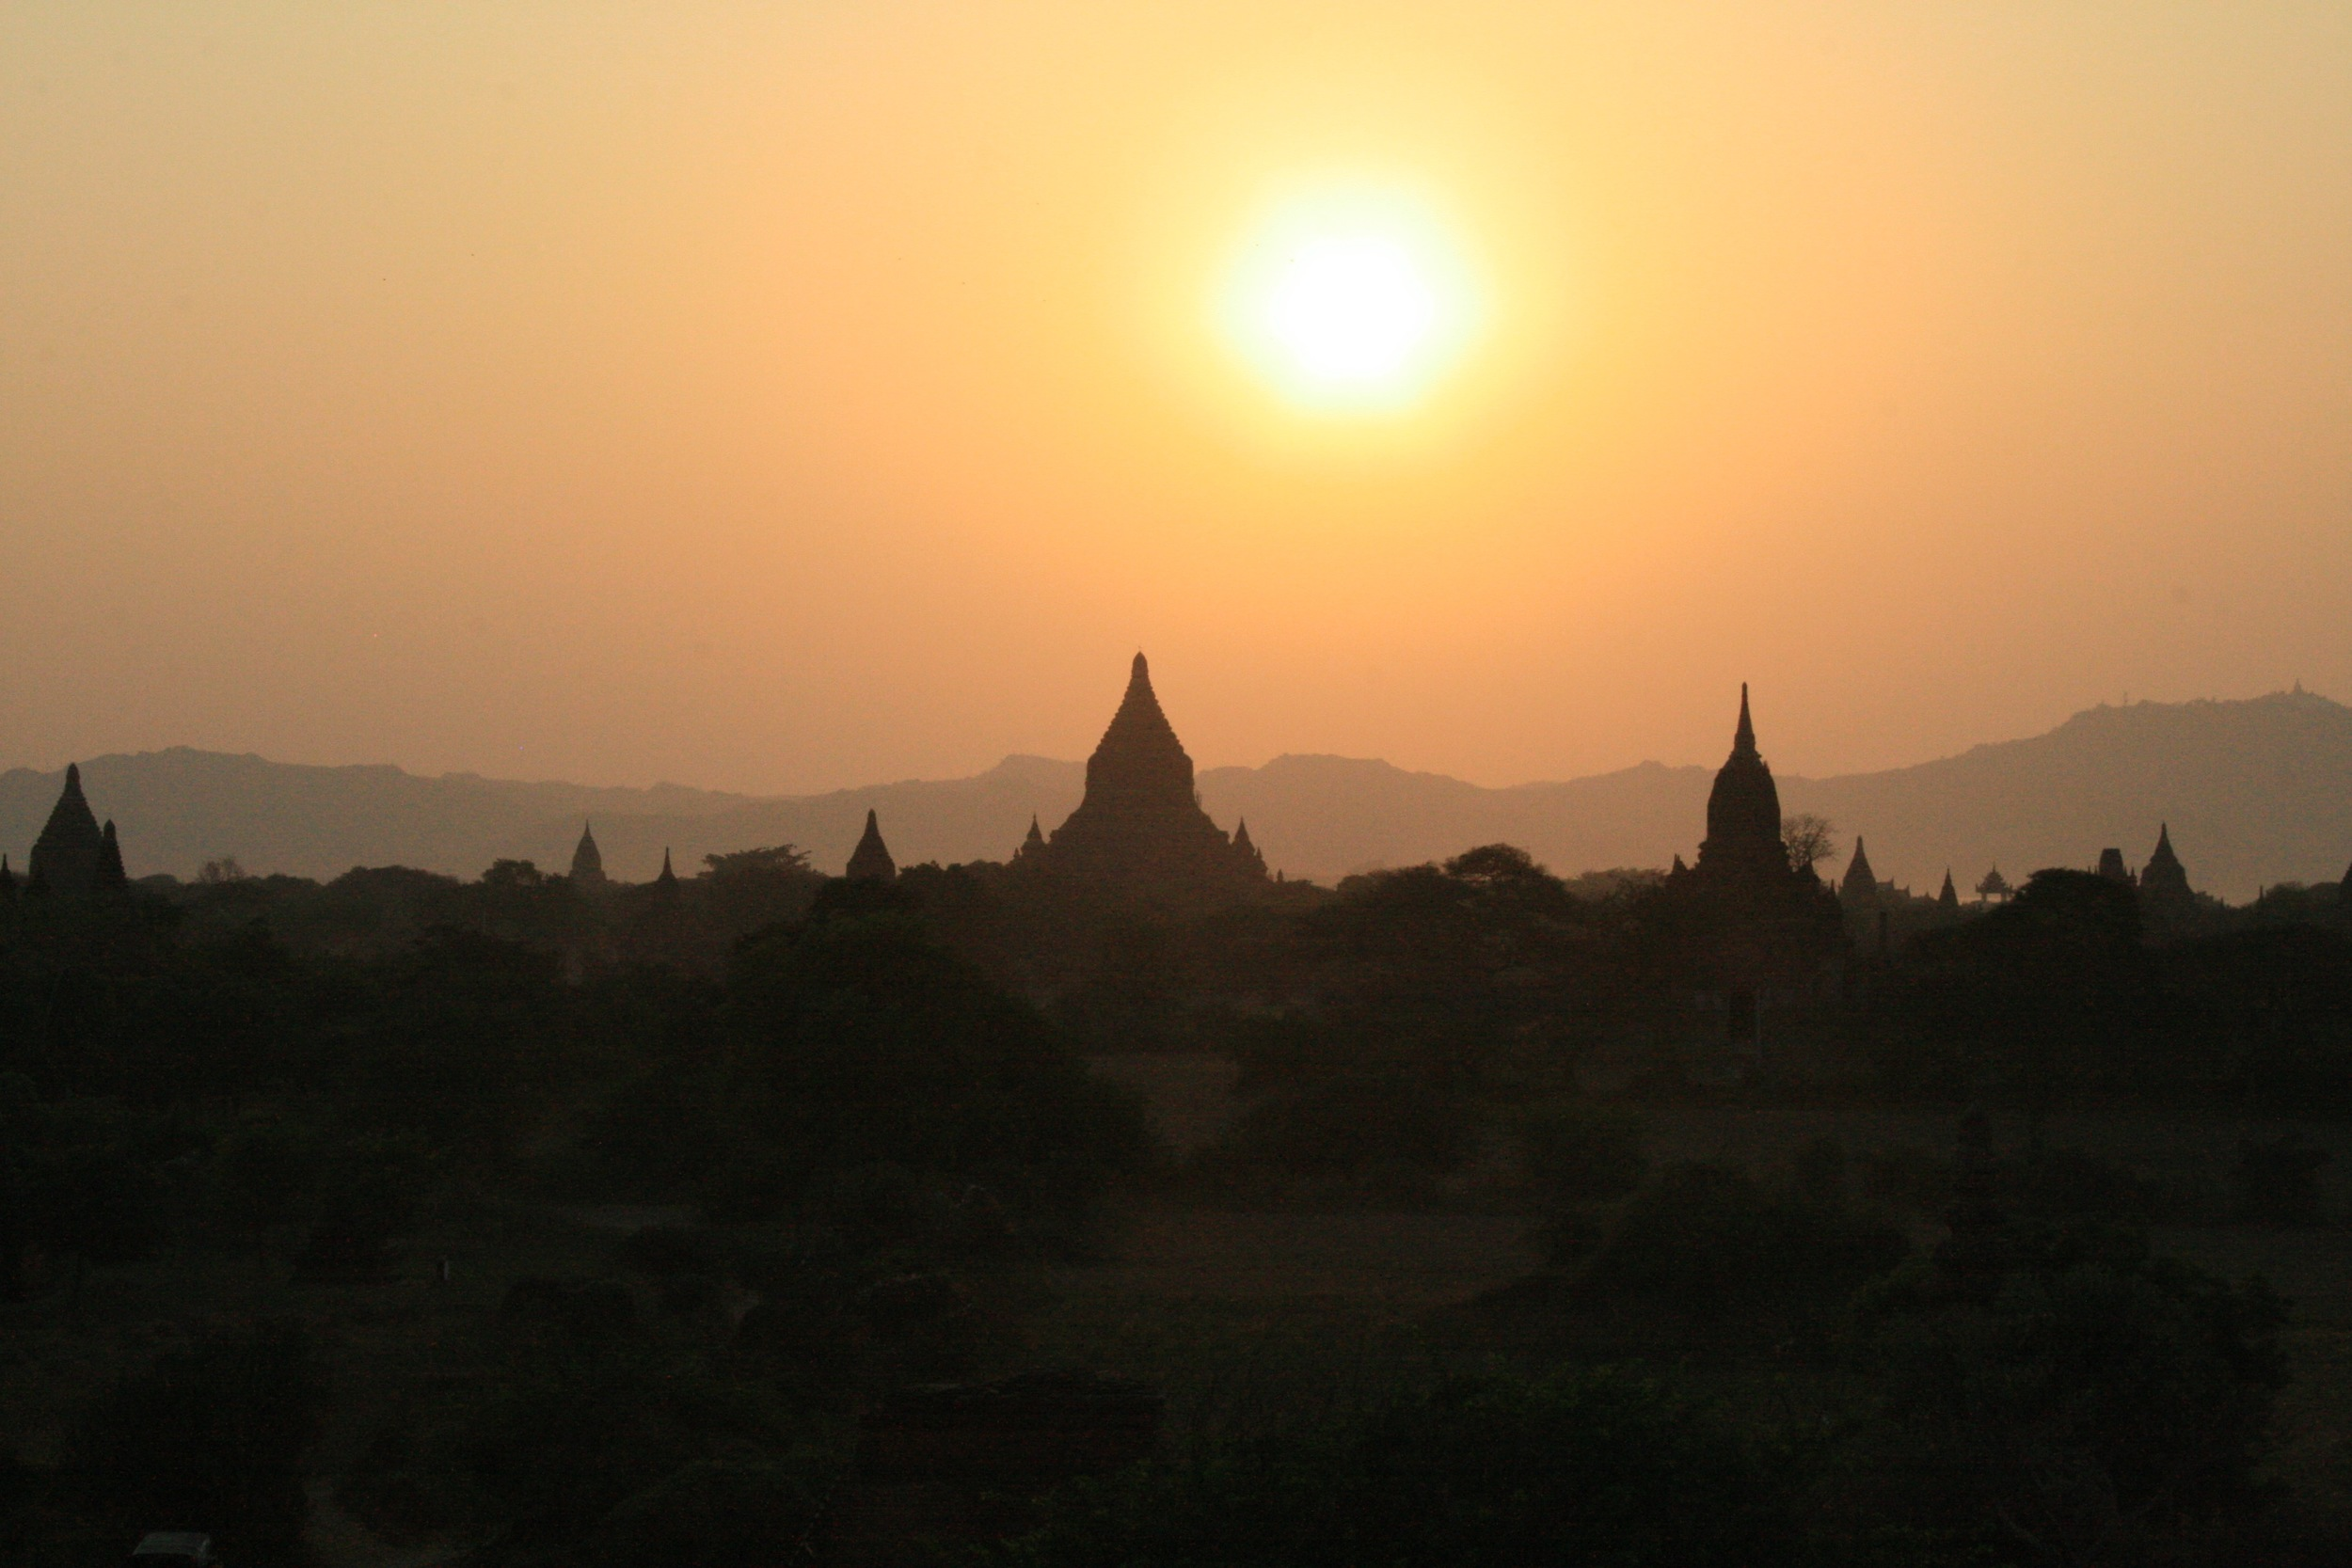 SUNSET FROM THE SHWE SANDAW PAGODA IN BAGAN